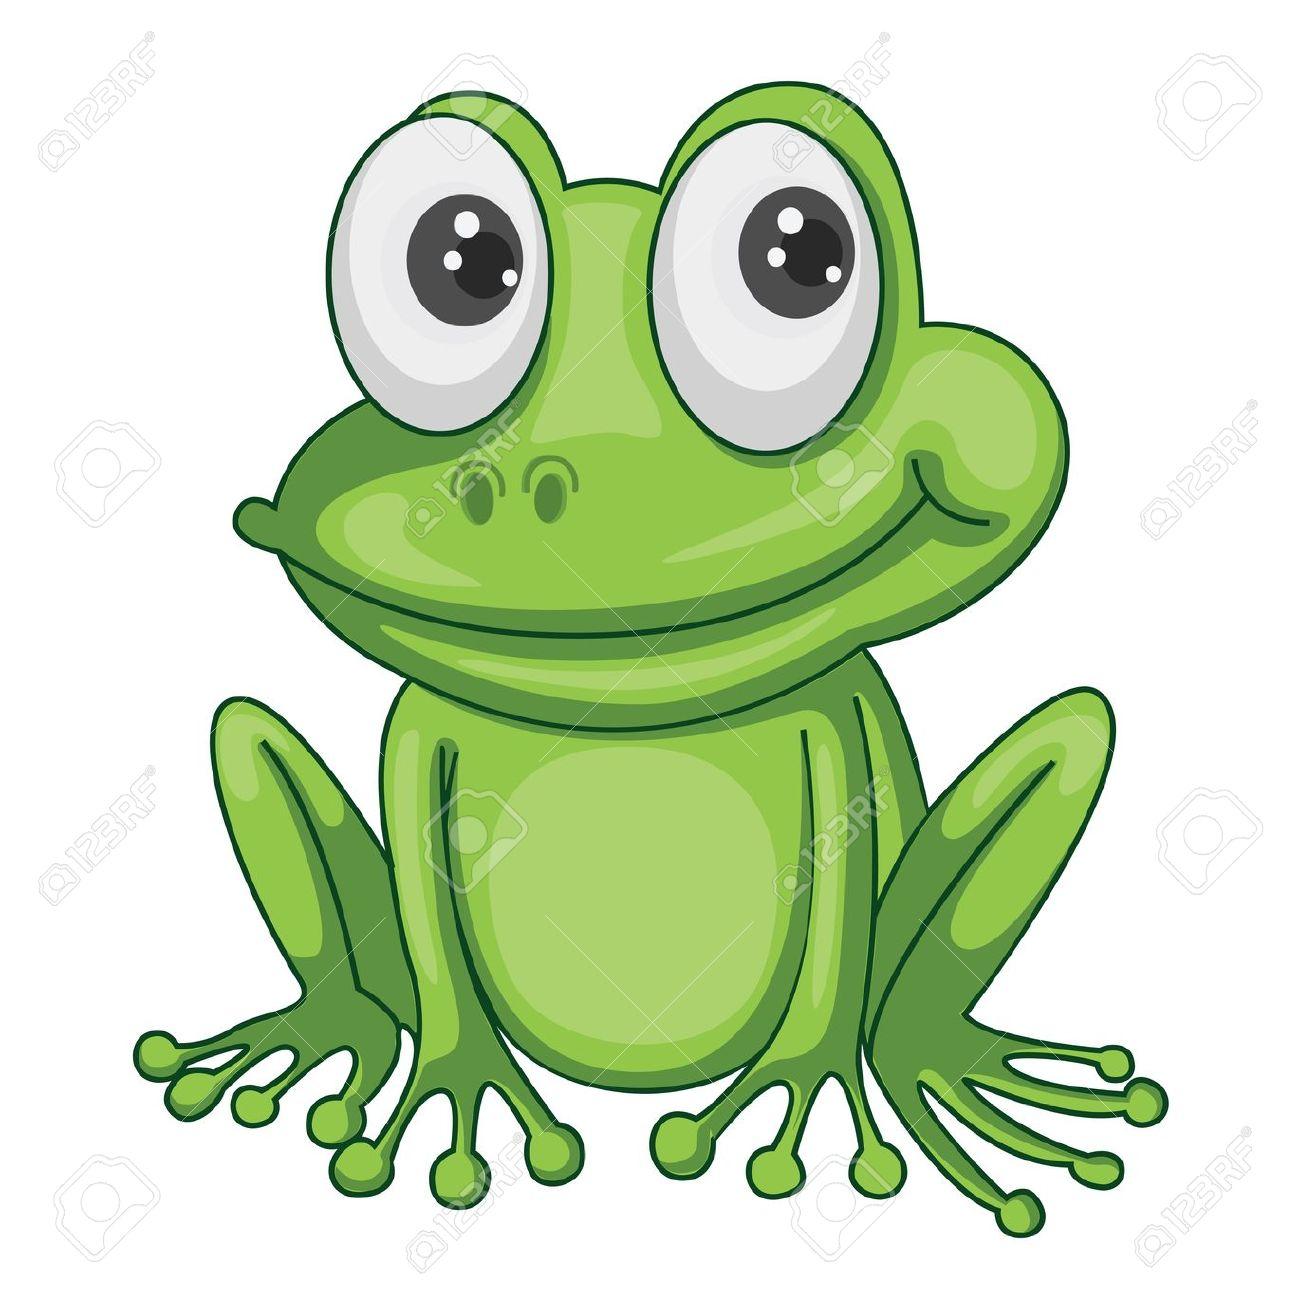 Frog clipart with no background.